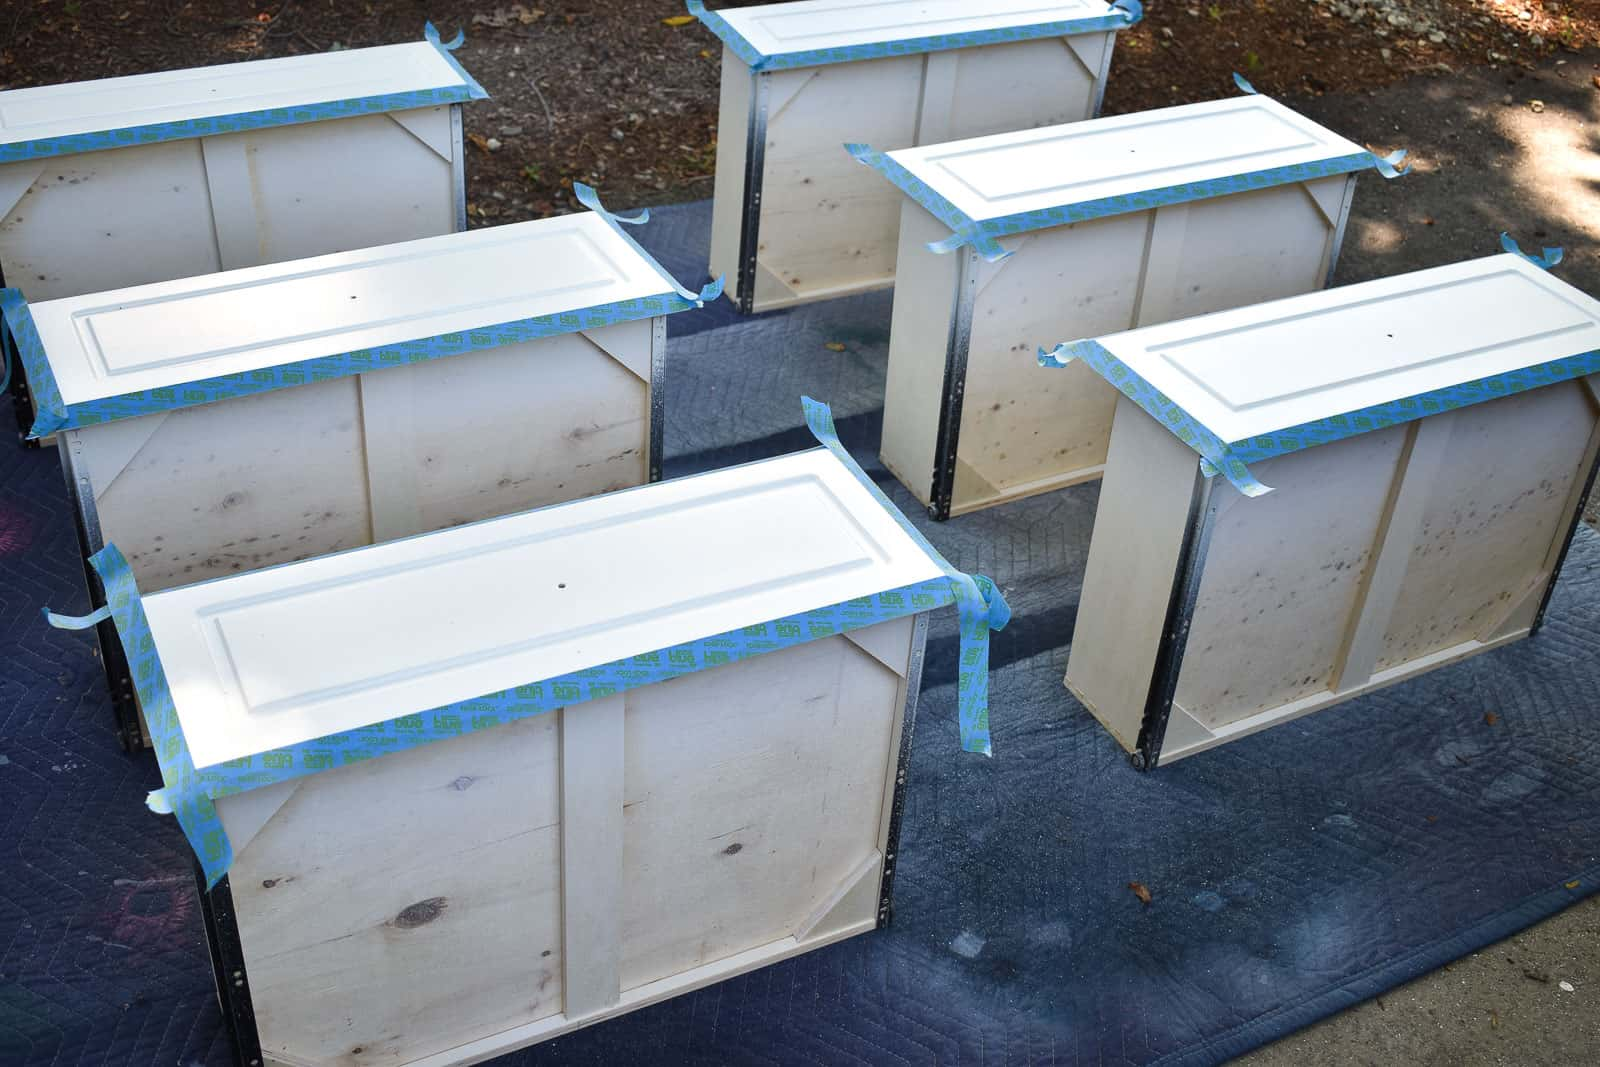 tape off the drawers and paint with three shades of blue for the ombre